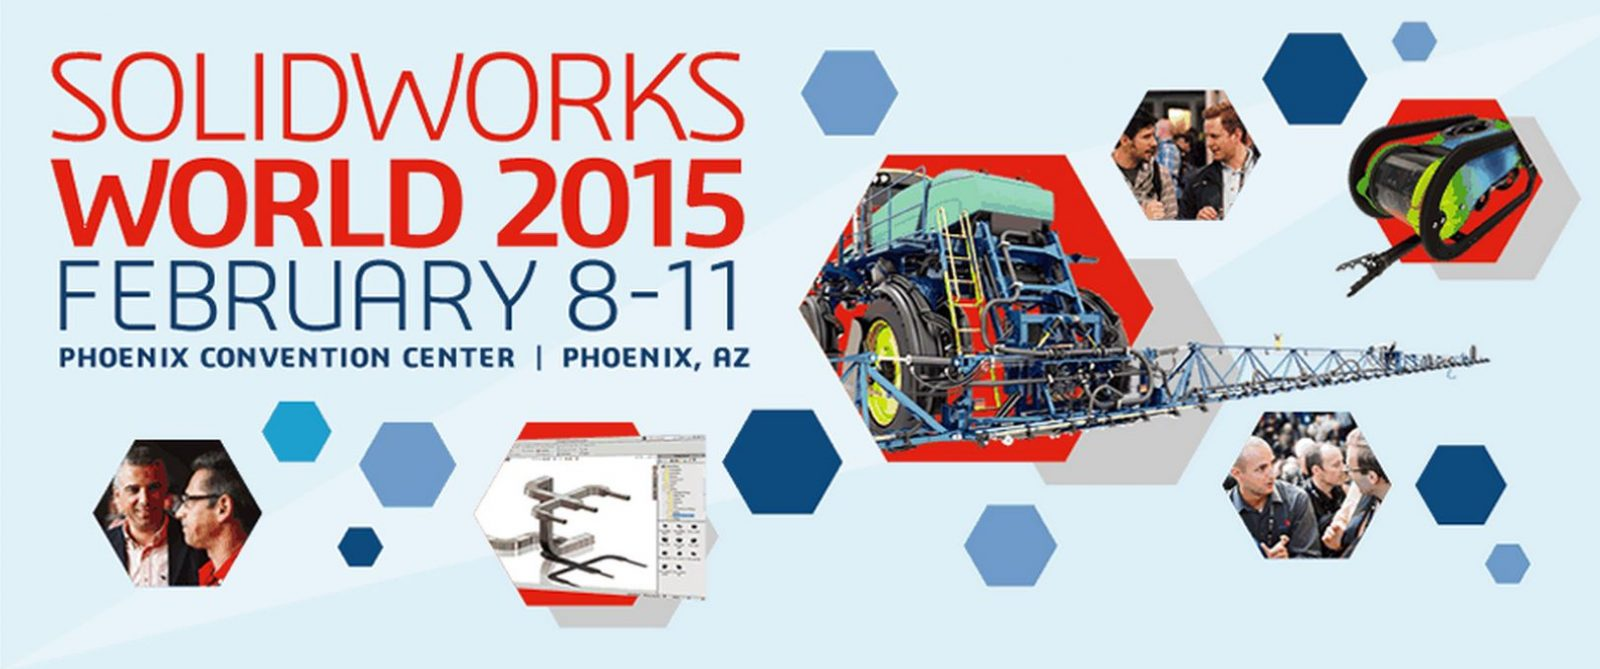 3D printers at solidworks world